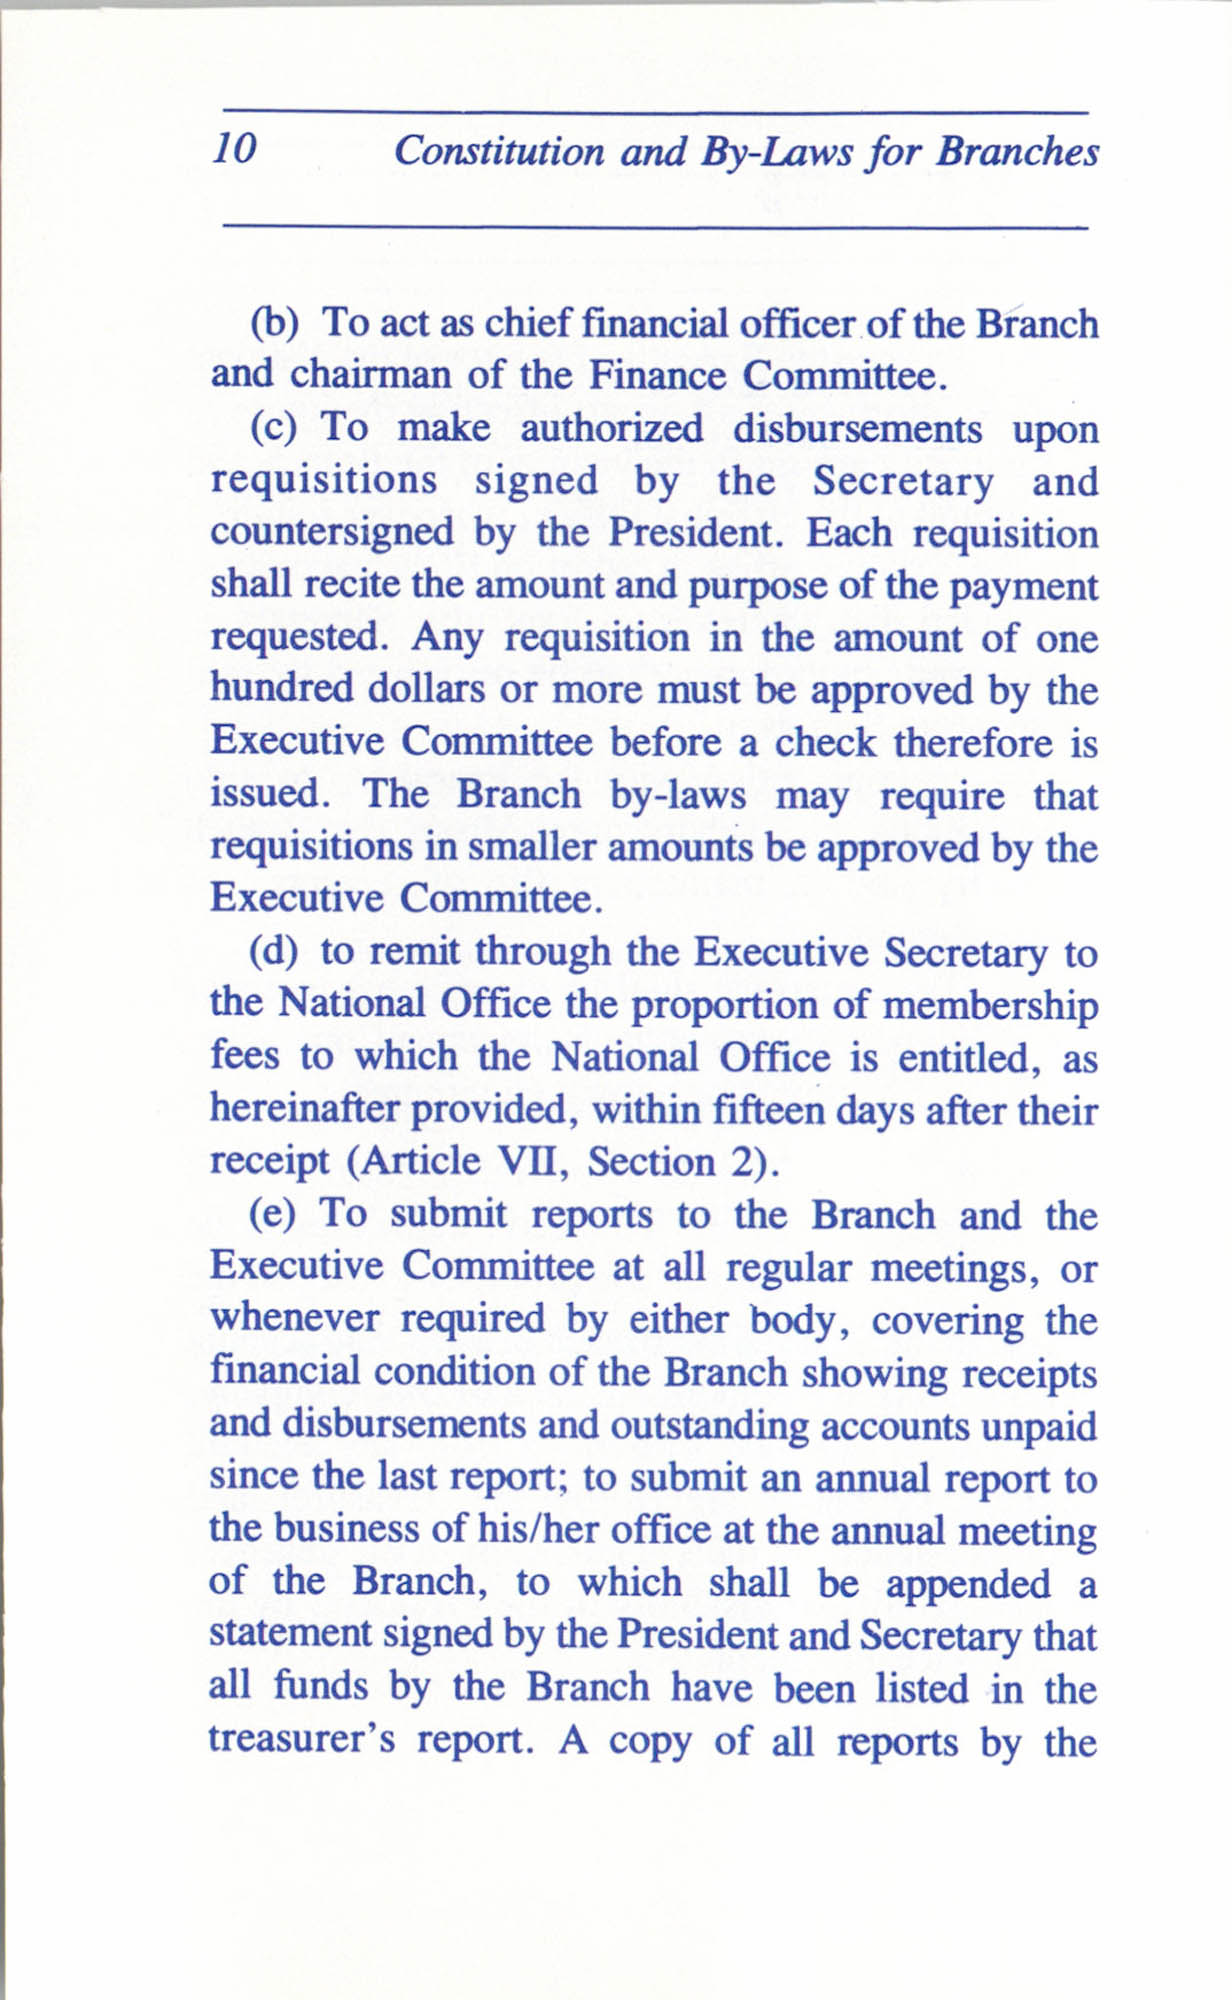 Constitution and By-Laws for Branches of the NAACP, June 1993, Page 10